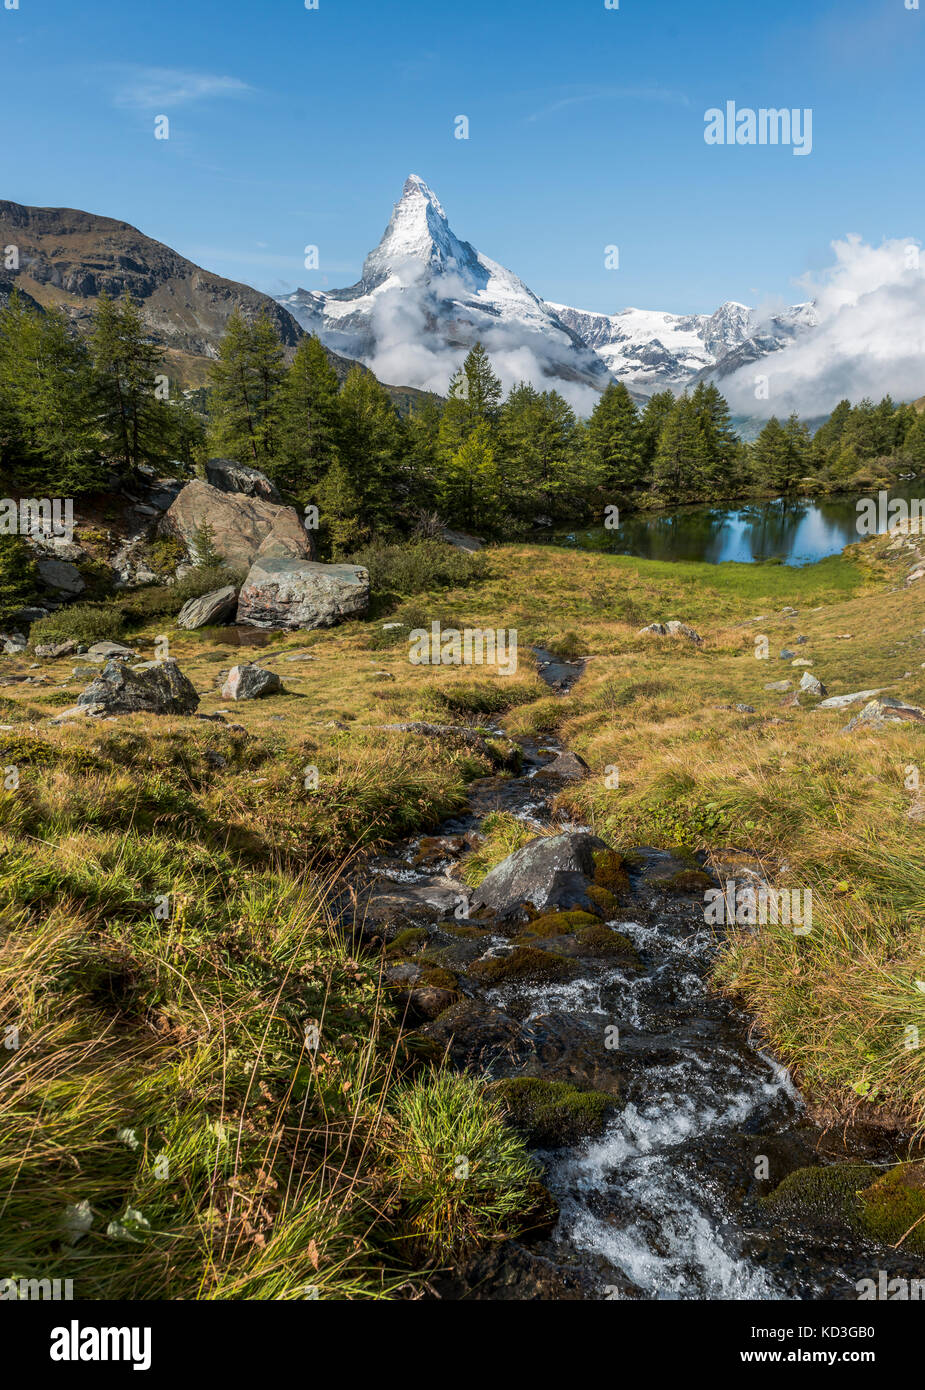 Snow-covered Matterhorn, stream flows into the Grindijsee, Valais, Switzerland - Stock Image